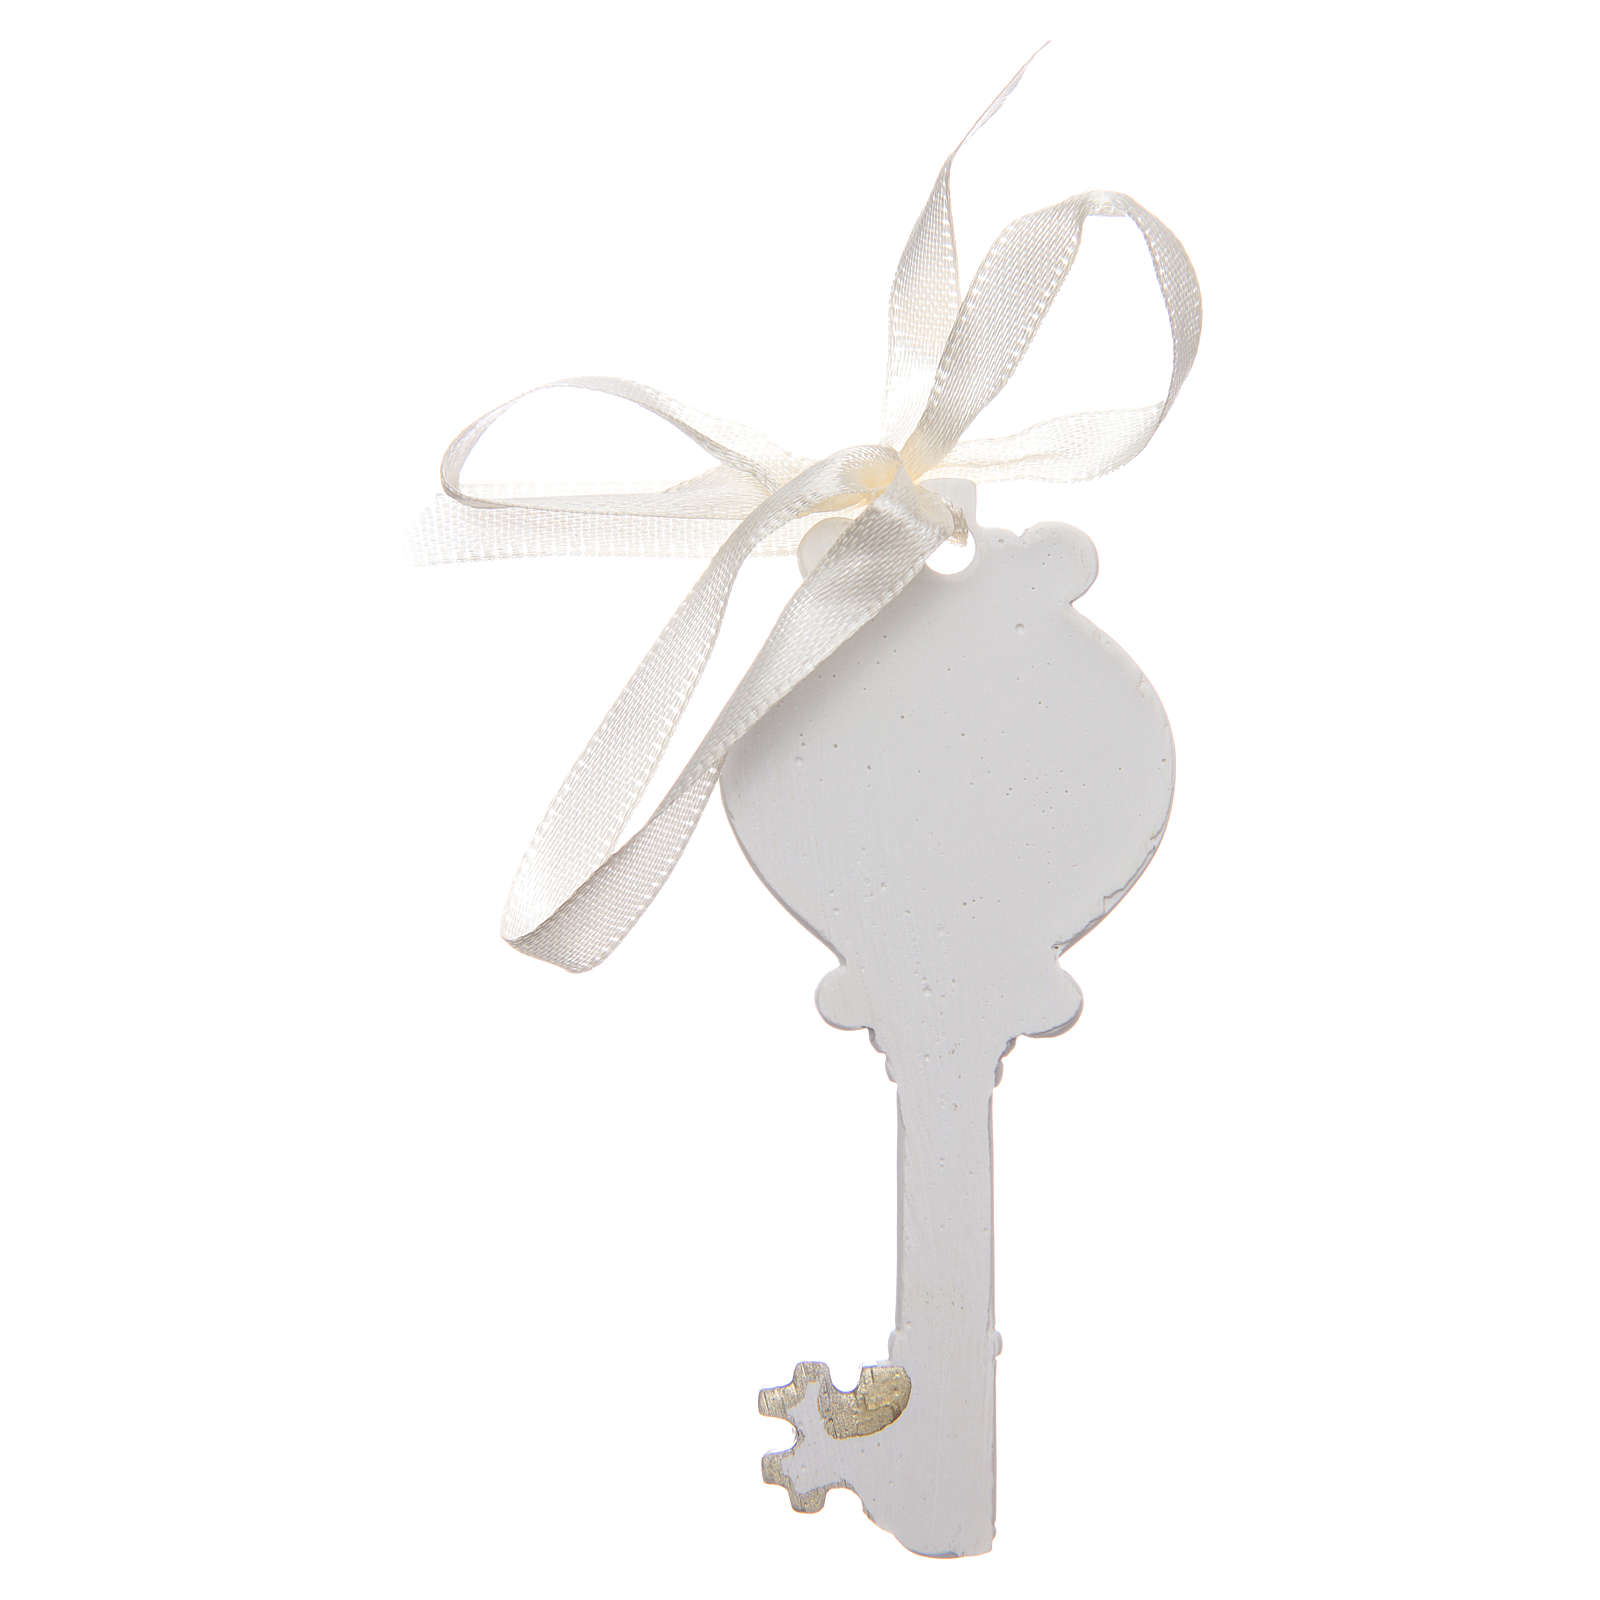 Confirmation memory key 4x9 cm 3